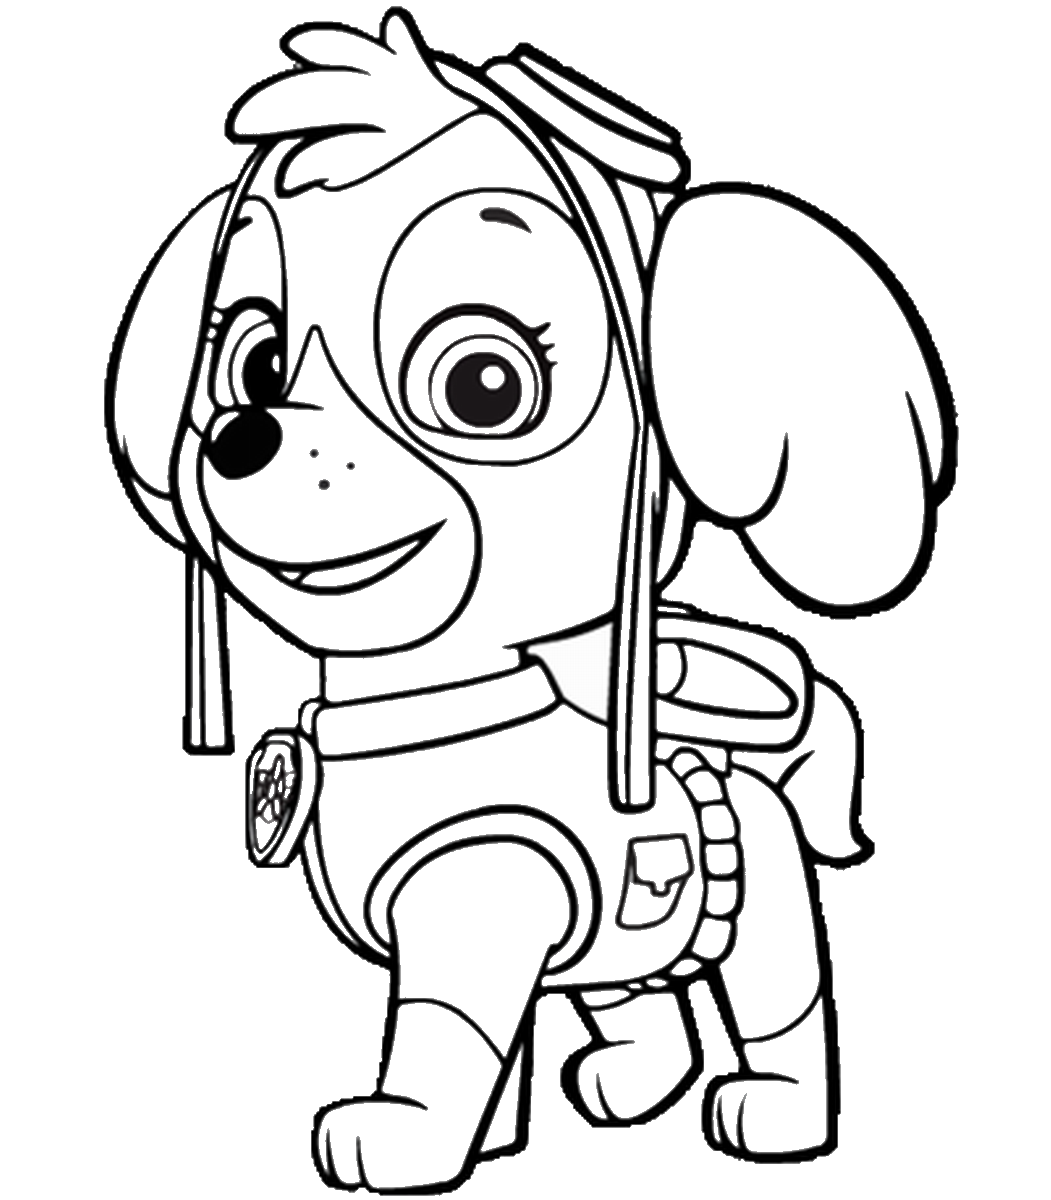 paw coloring page paw patrol coloring pages best coloring pages for kids paw page coloring